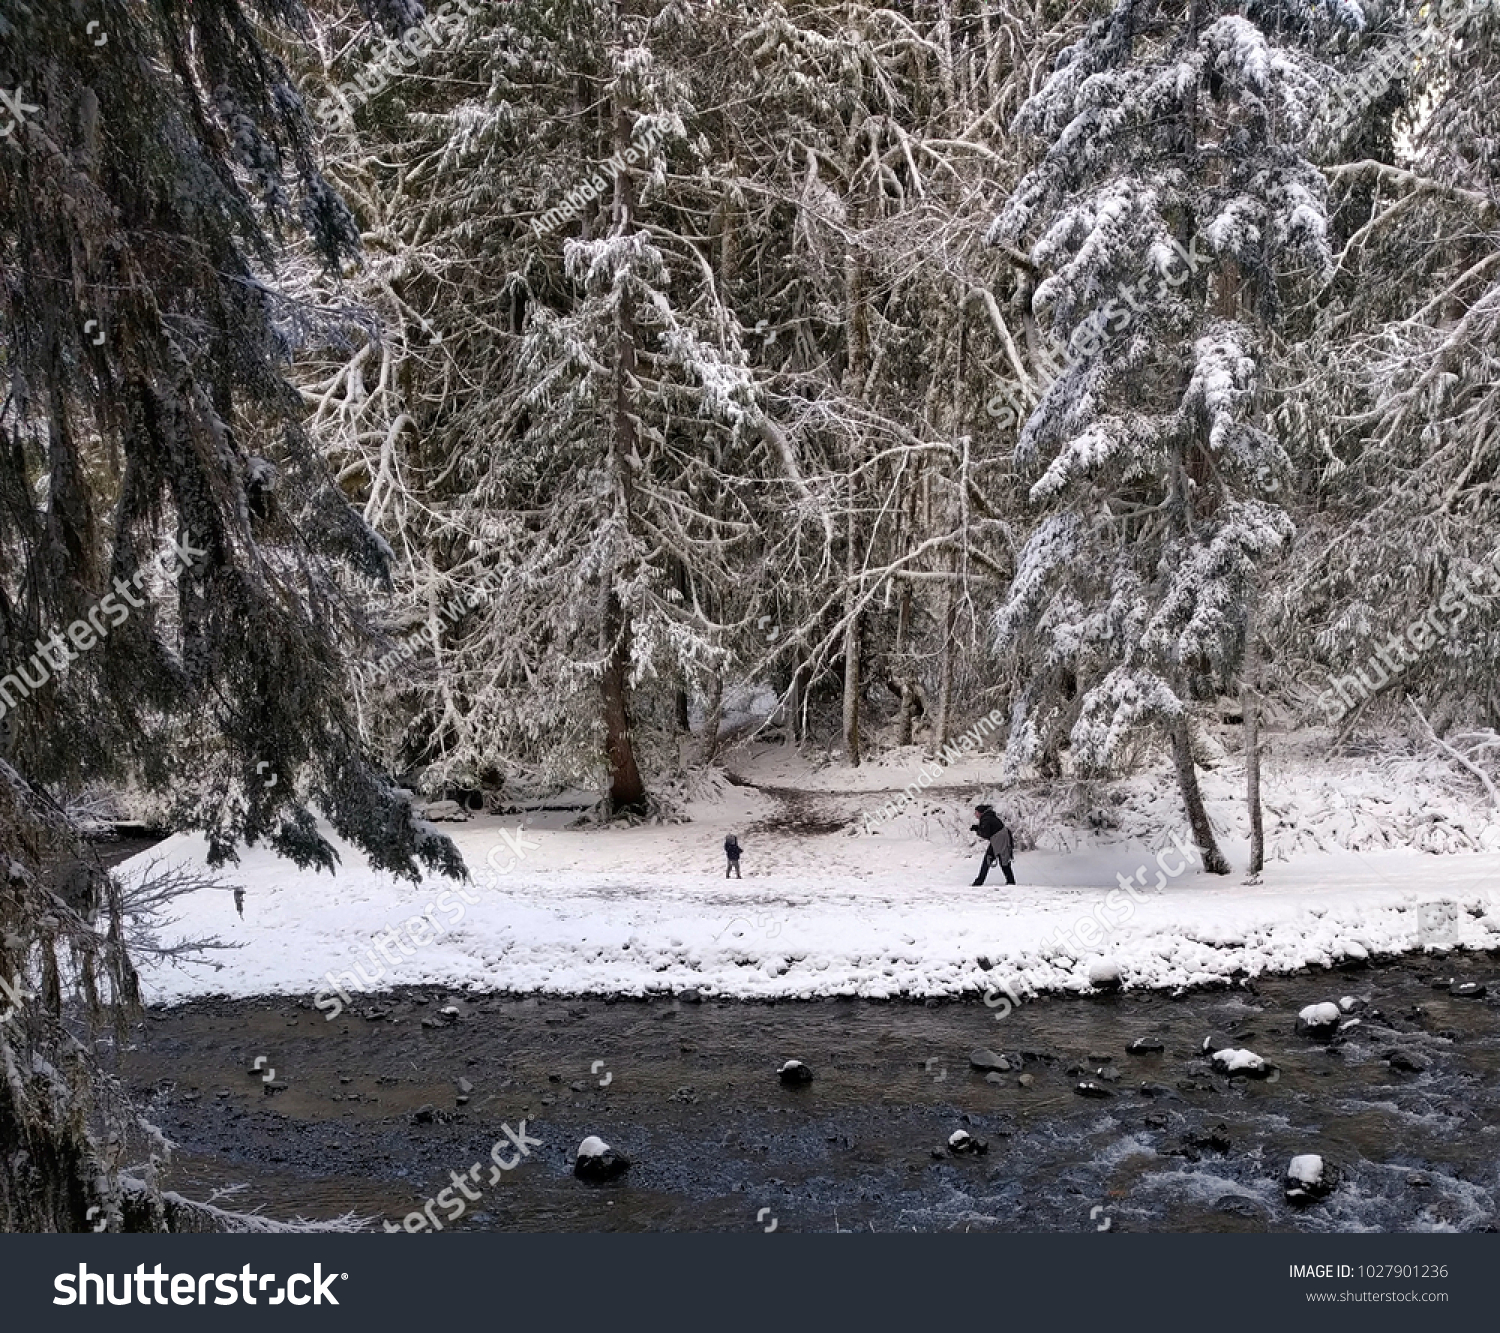 mother and child playing in snow on creek bank